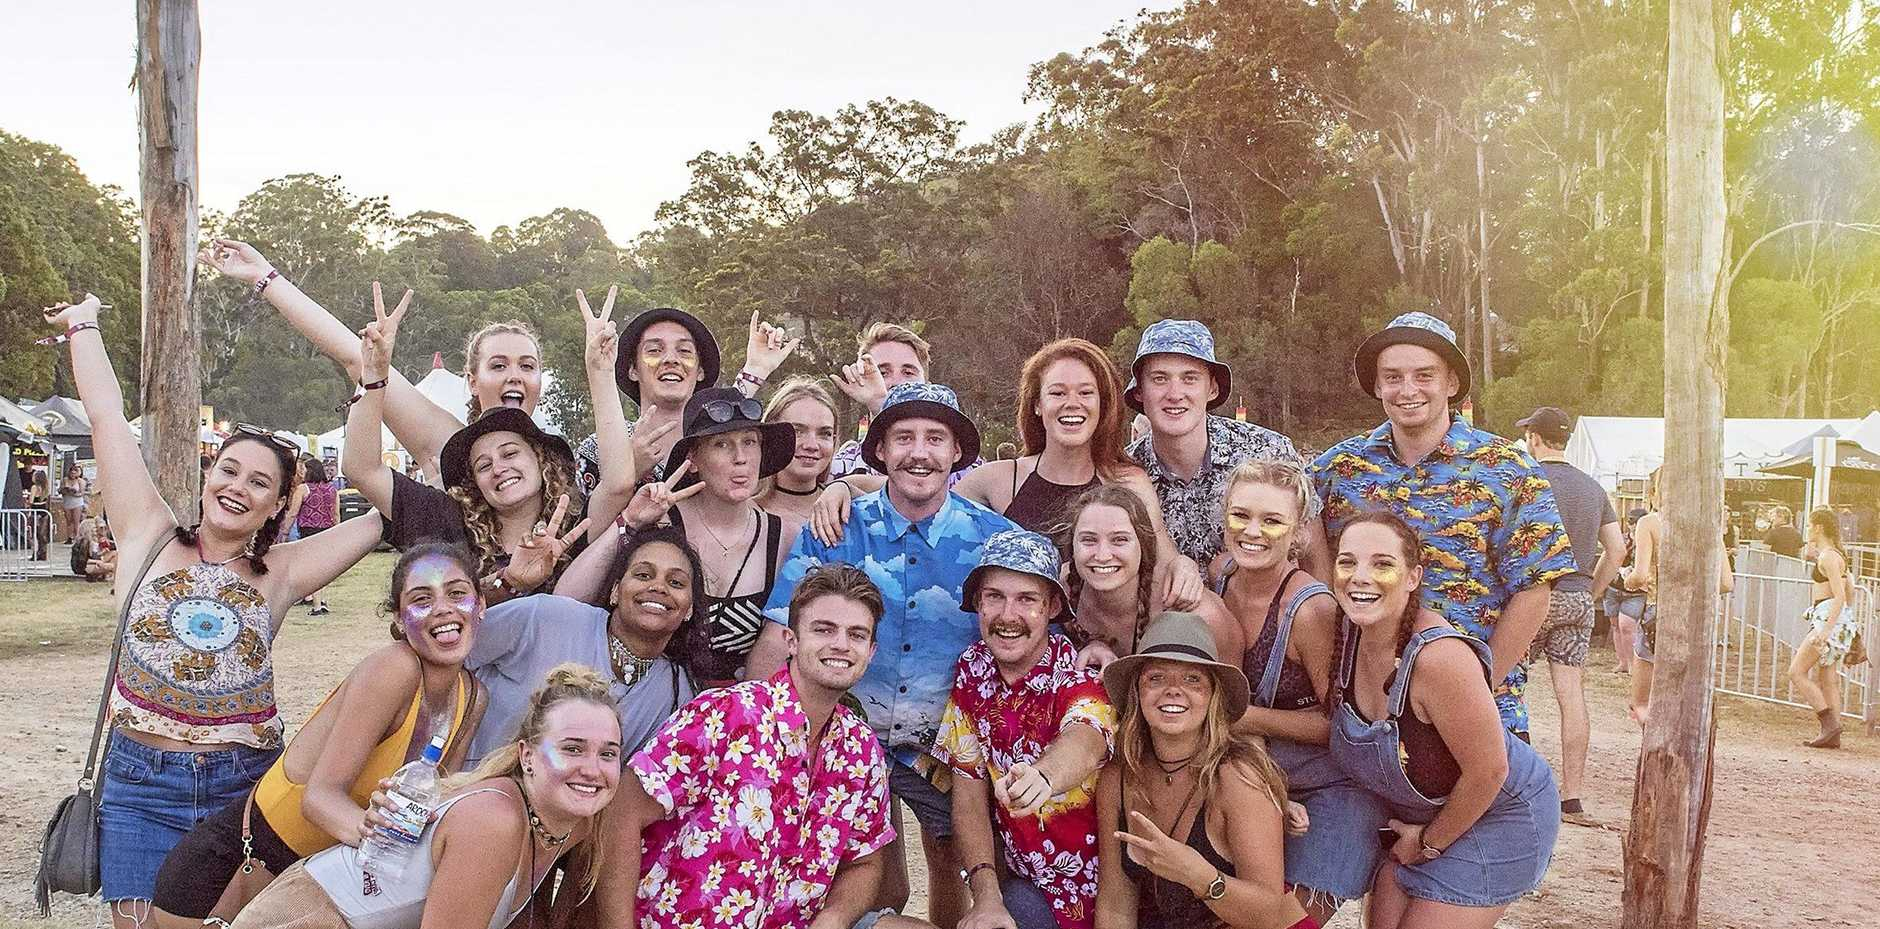 Crowds at Falls Festival in Byron Bay. Photo: Niche Pictures - Lyn McCarthy